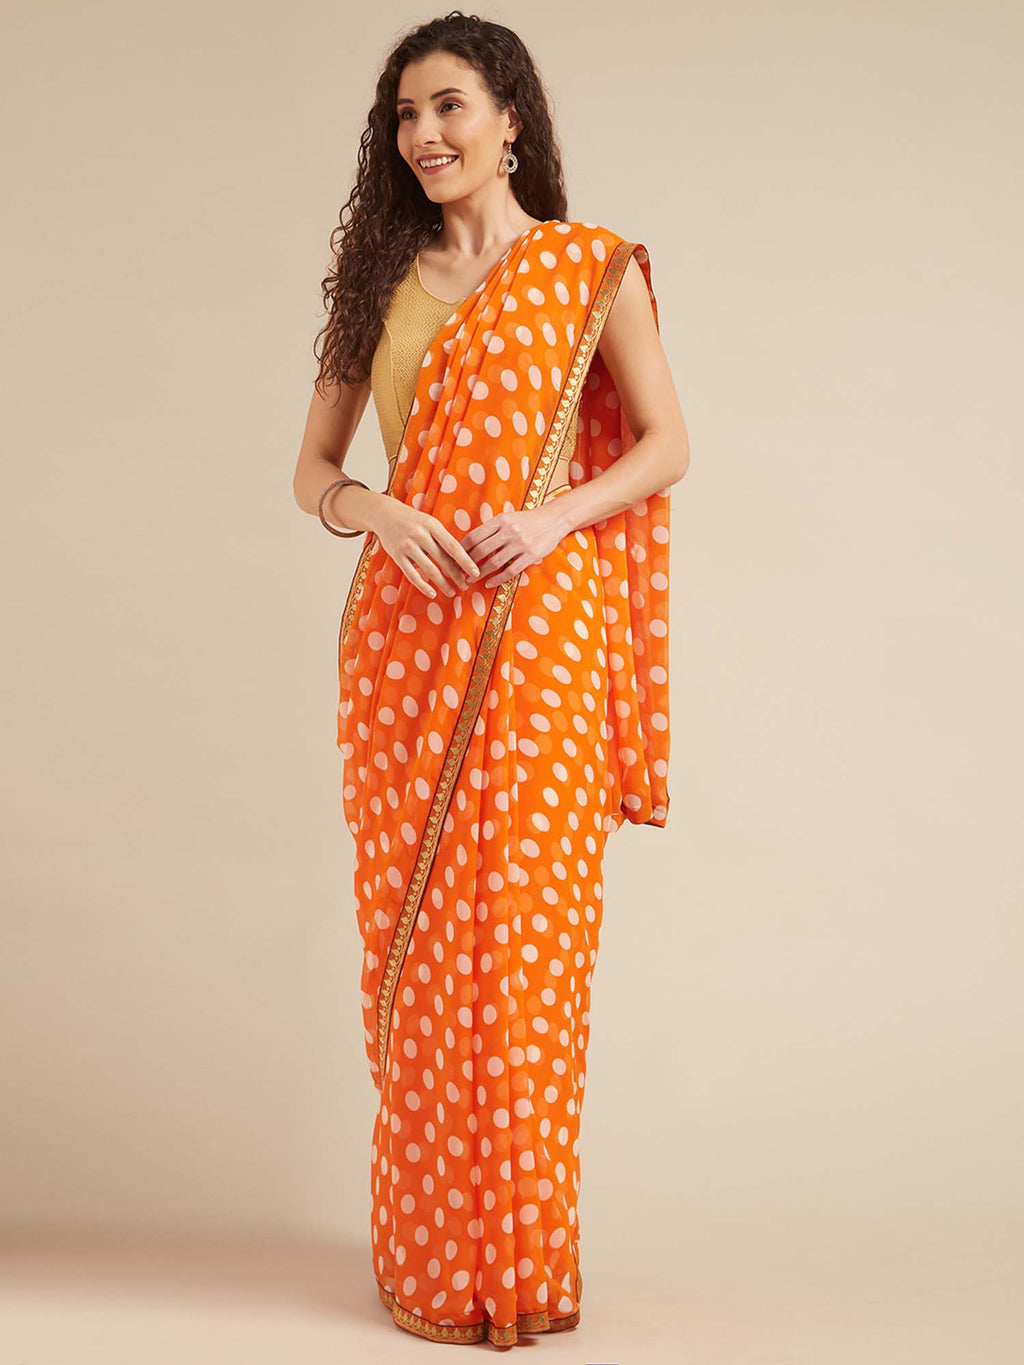 Orange and White Poly georgette Polka dots print with Printed Lace and Solid Dupion Blouse - Riviera Closet